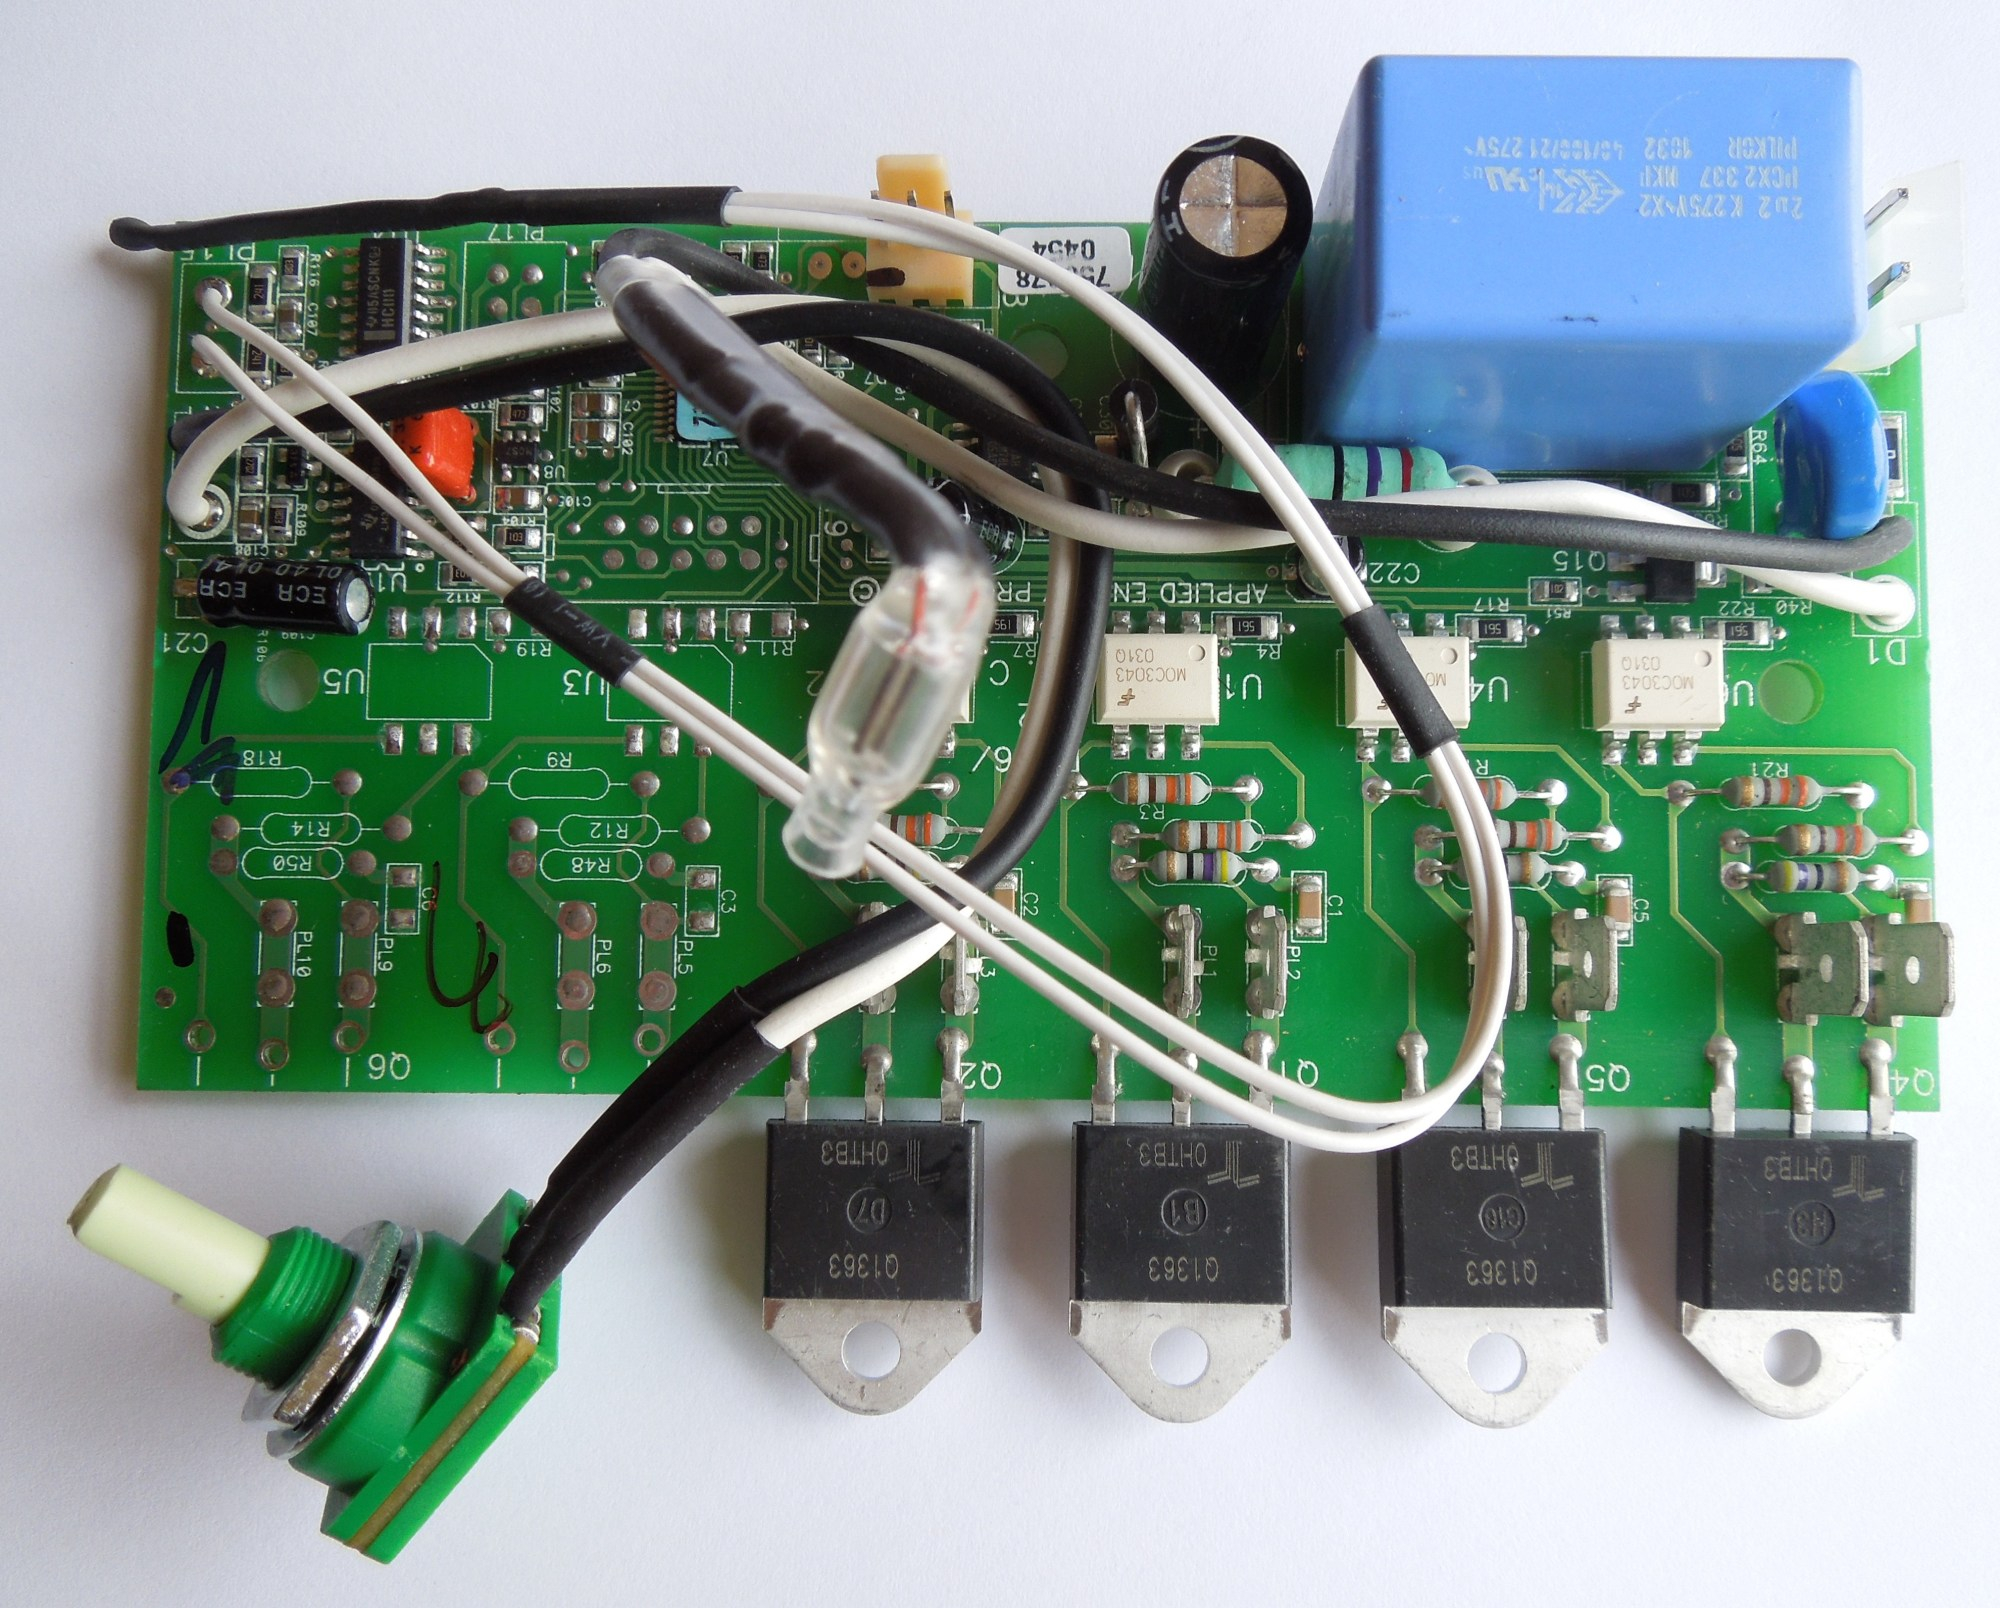 hight resolution of powerstream pro rp17pt pcb control board 93 793777 for copper can unit